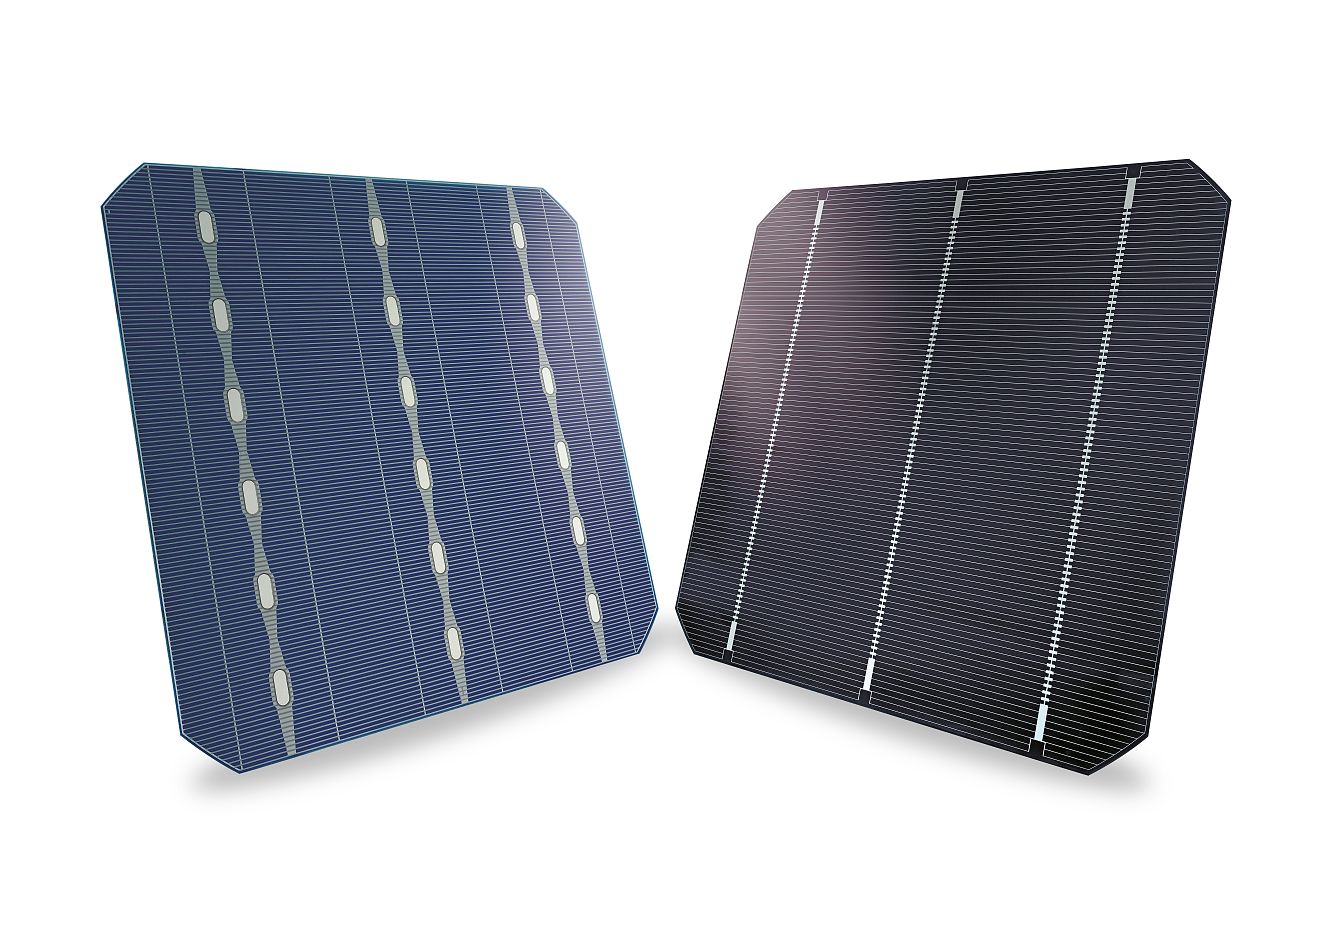 Amtech Systems has secured a follow-on order for the second phase of a multi-phase 1GW project for high-efficiency n-type PERC and n-type bi-facial cell equipment. Image: SolarWorld.